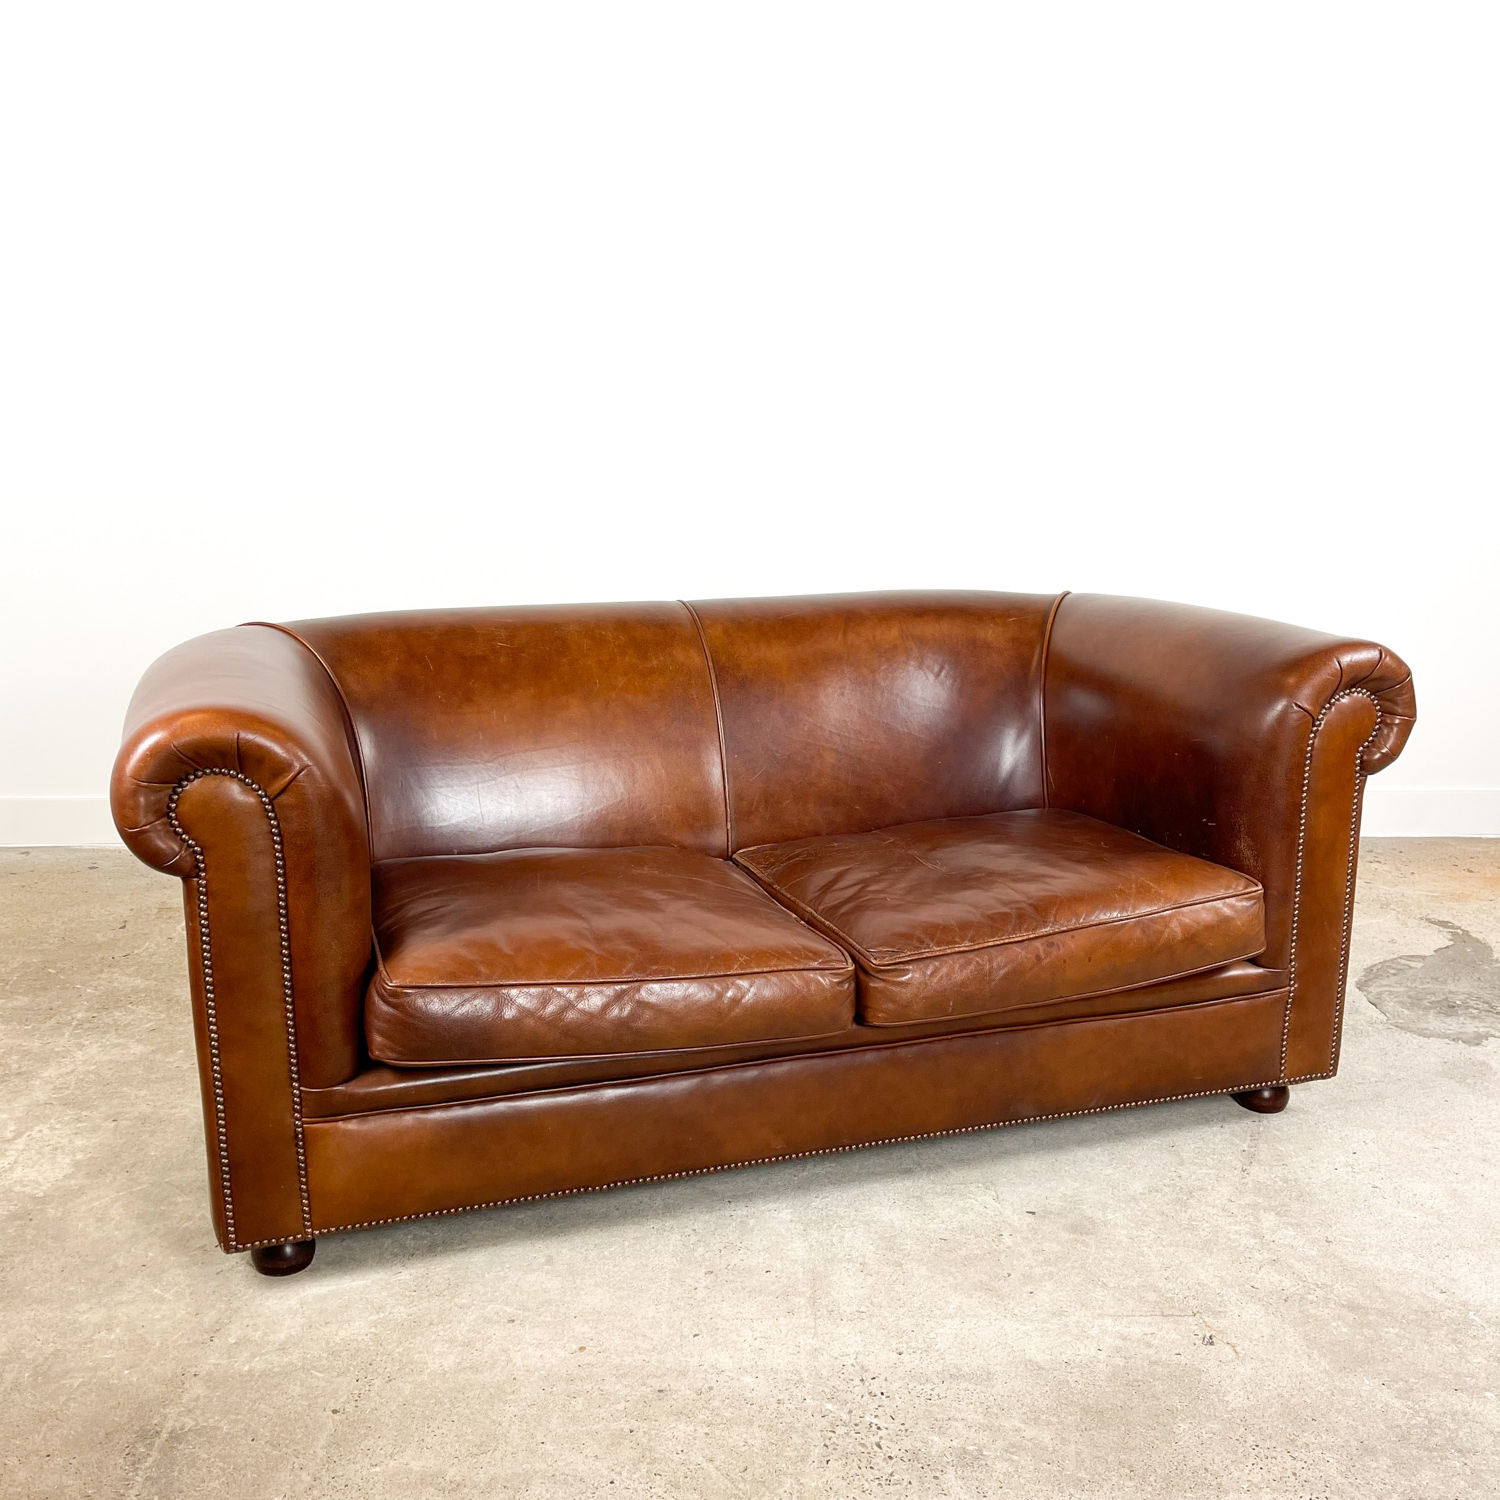 Vintage dark brown sheep leather 2 seater sofa Bendic